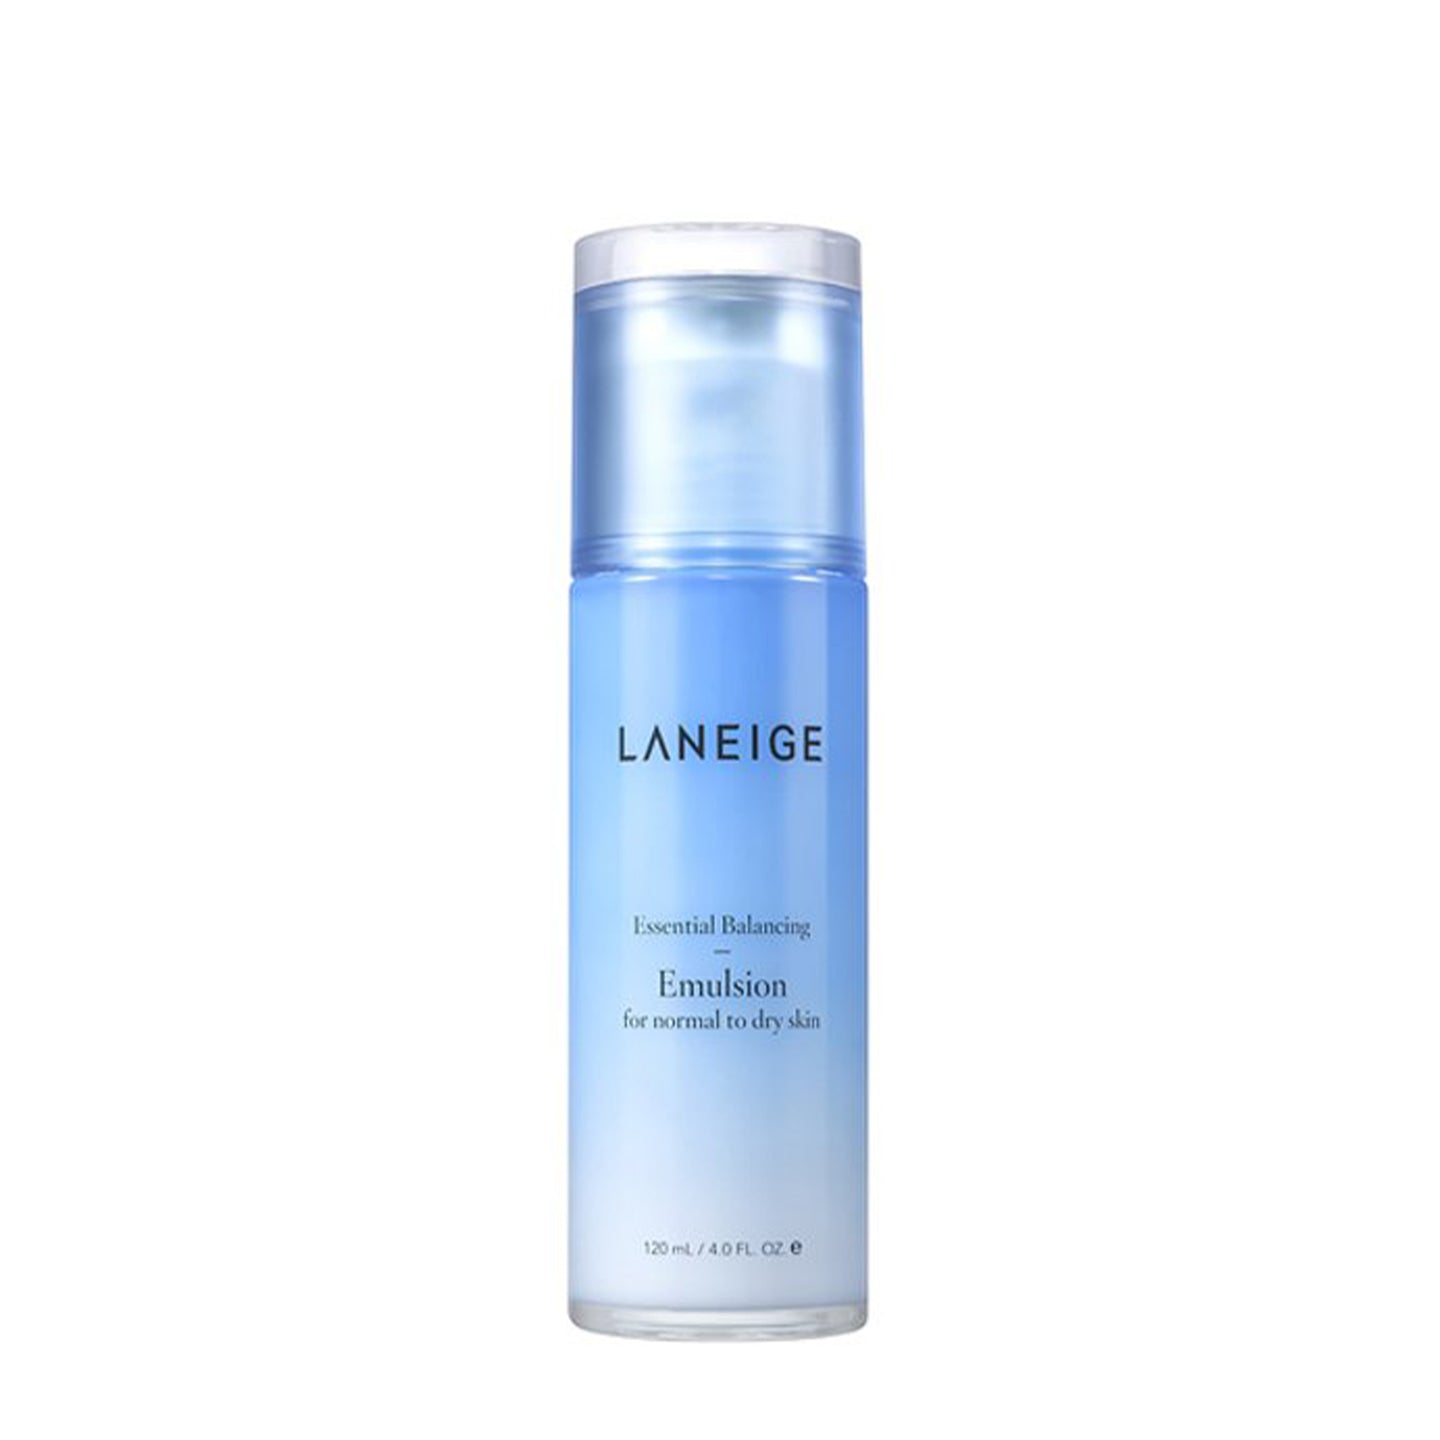 Essential Balancing Emulsion for Normal to Dry Skin